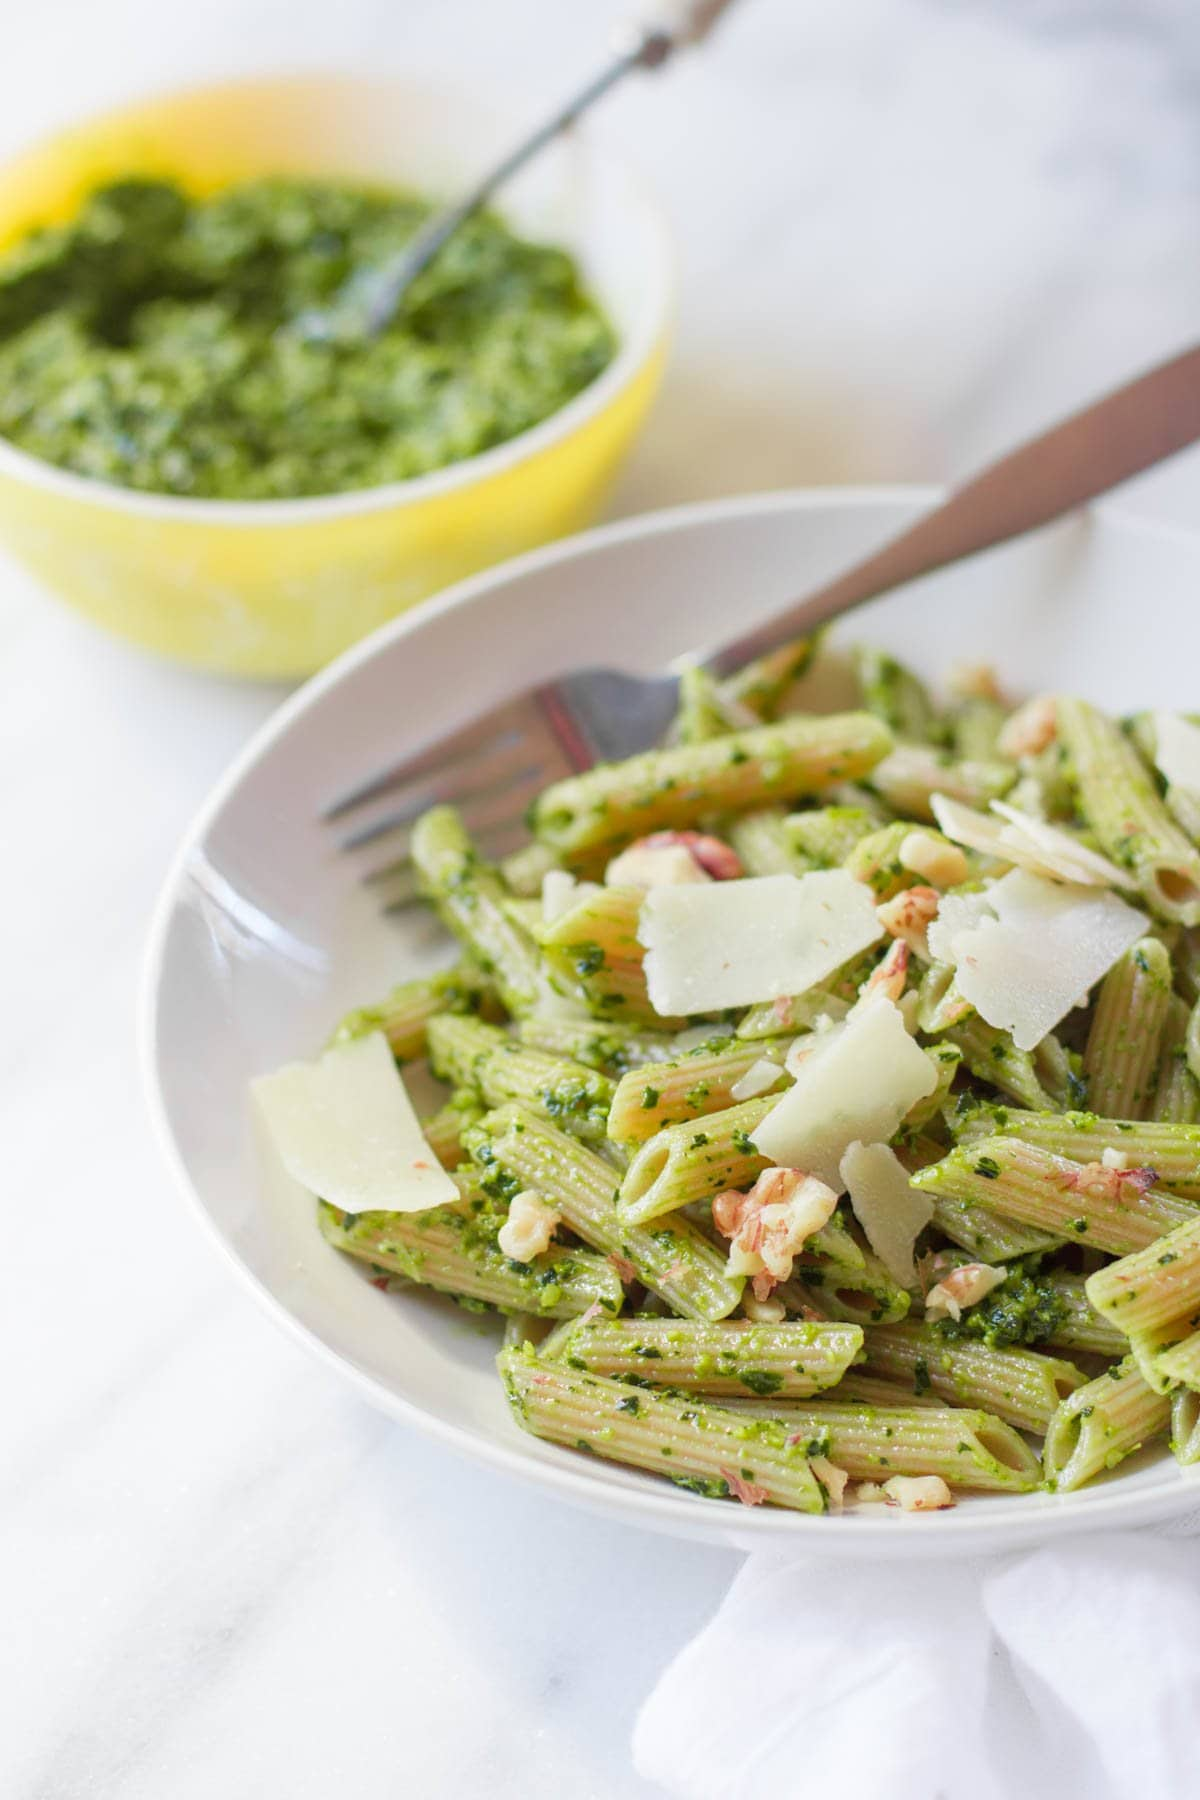 A bowl of pasta sits covered in the pesto and topped with parmesan shavings. A bowl of pesto sits in the distance.